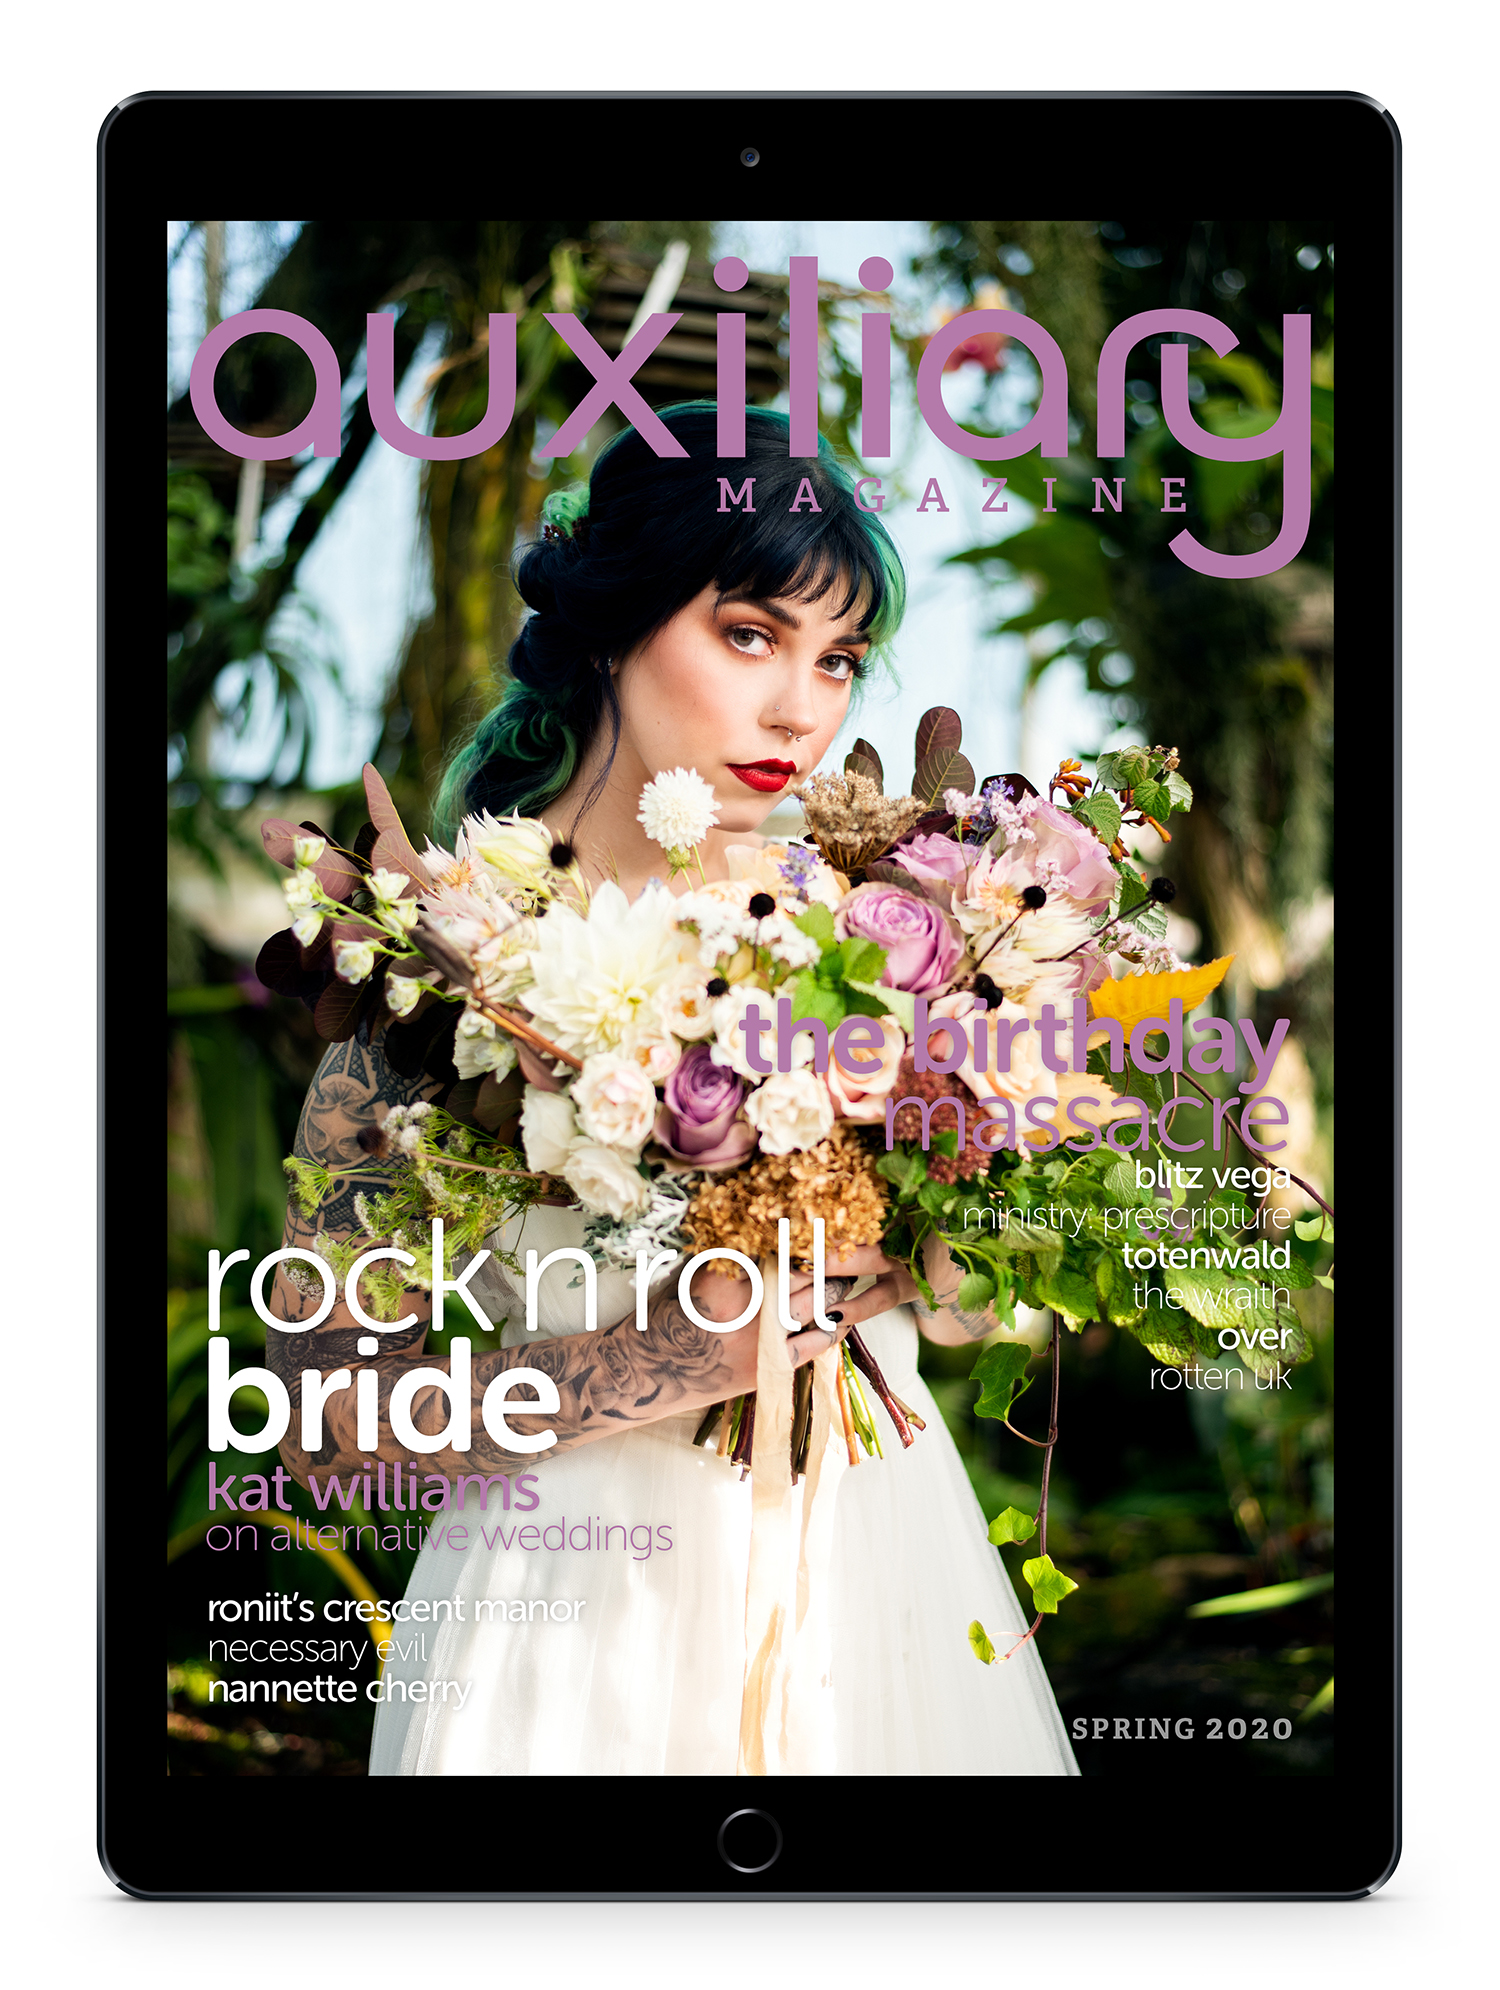 Auxiliary Magazine Spring 2020 Digital Edition